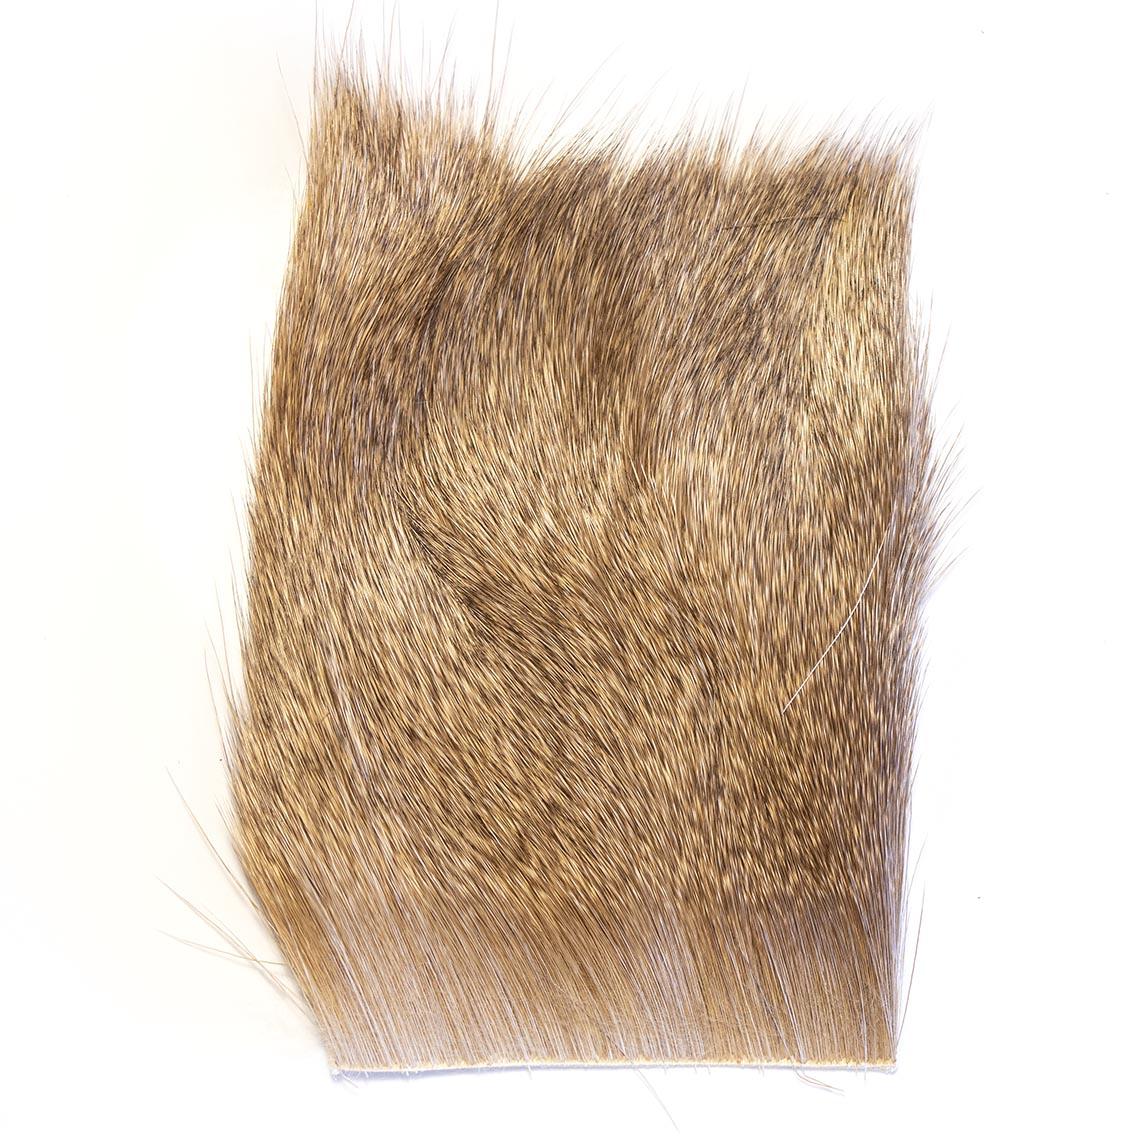 Elk Body Hair